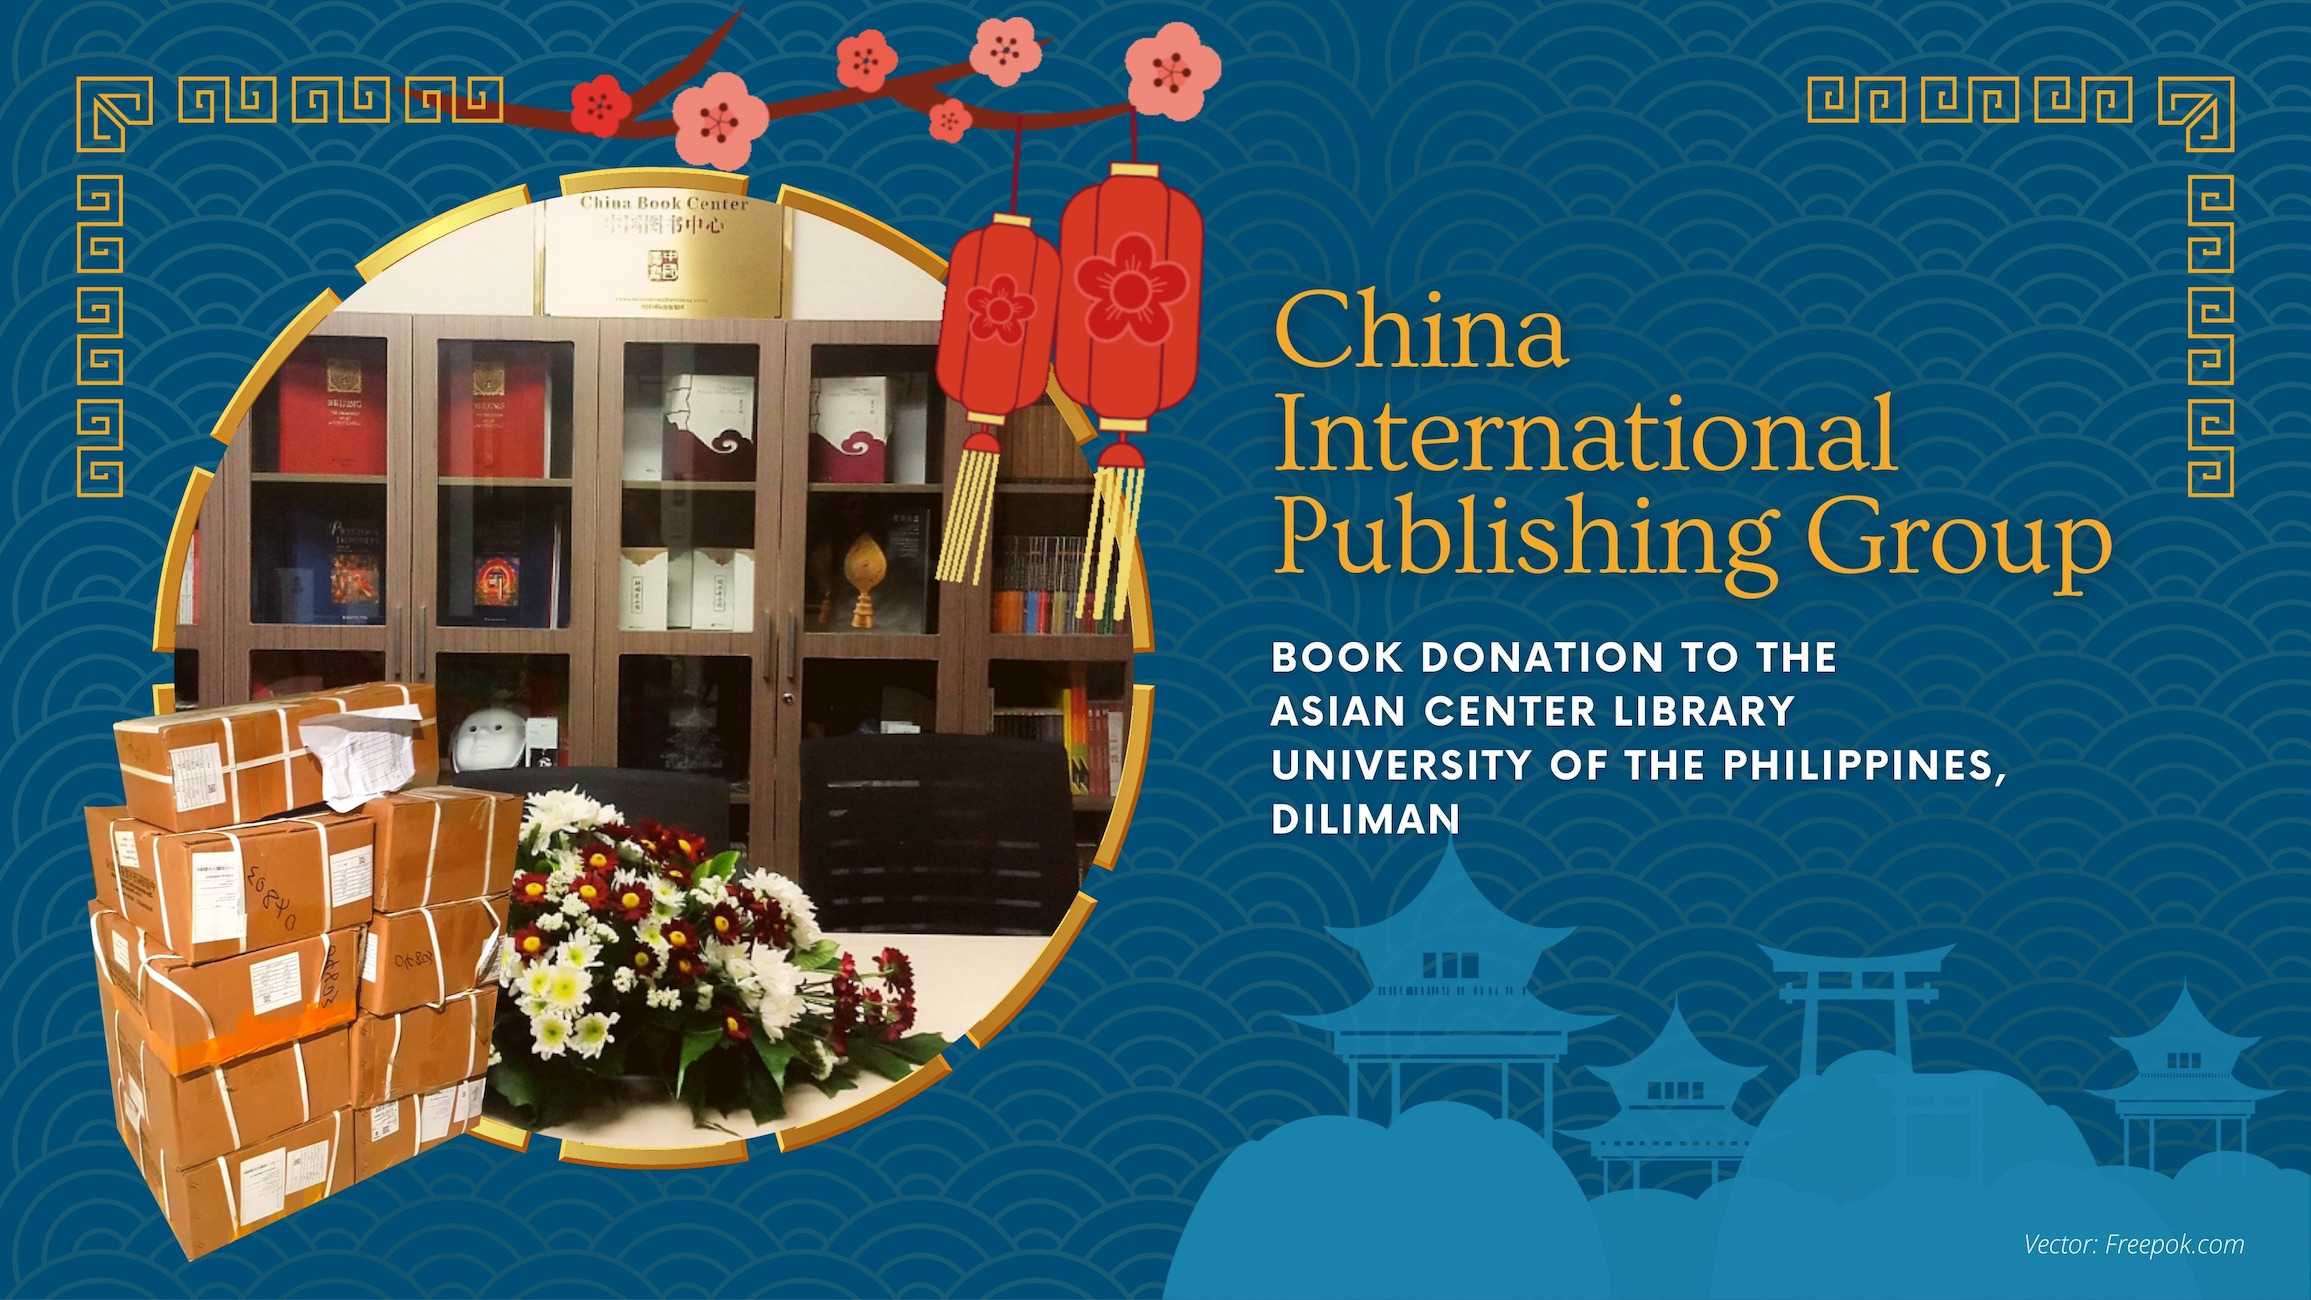 China International Publishing Group Donates Books to the Asian Center Library